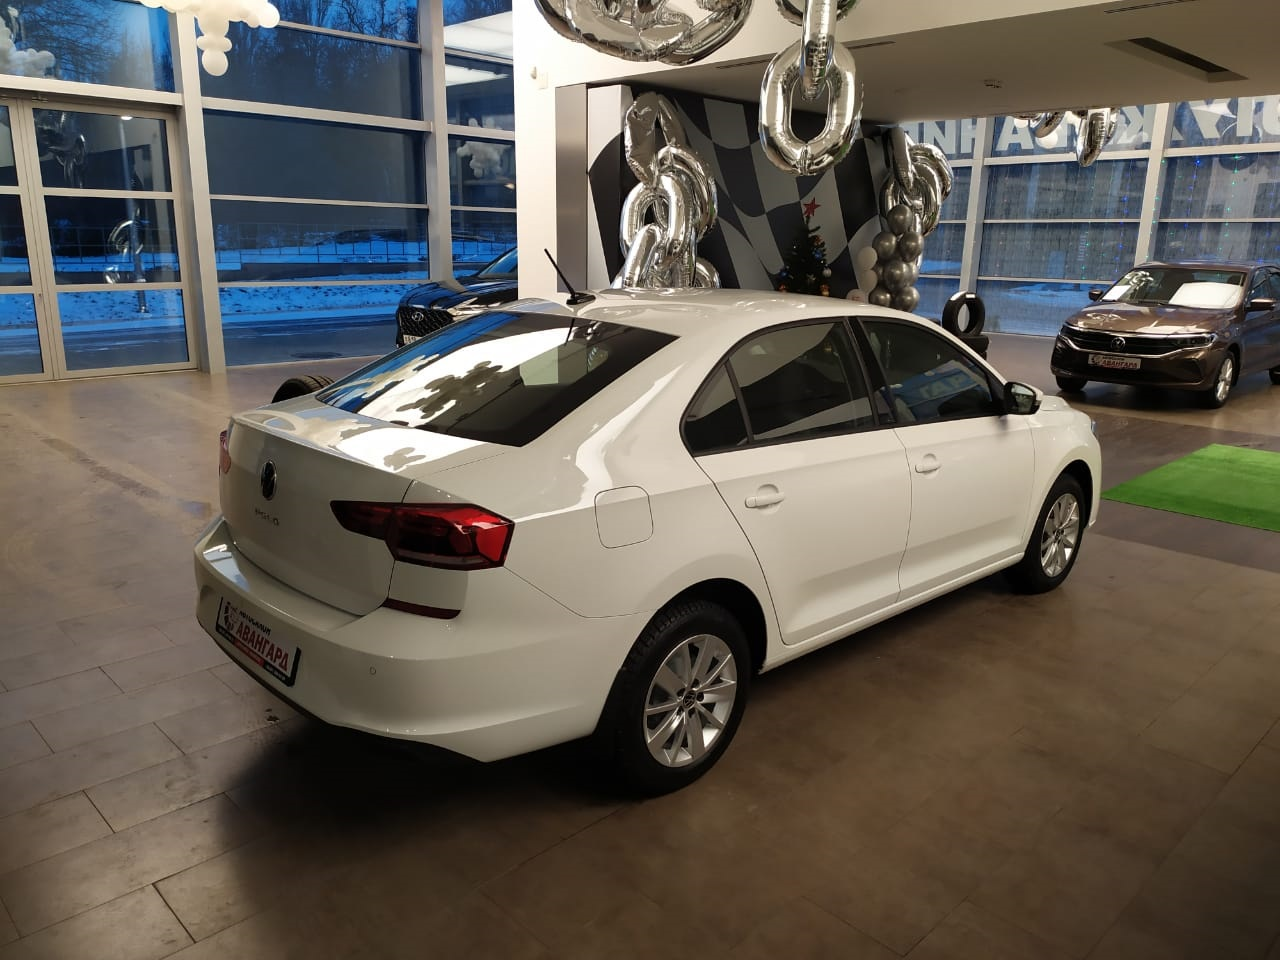 Volkswagen Polo лифтбек 1.6 л., 16-кл., (110л.с.) 5МТ. Respect. Белый Pure